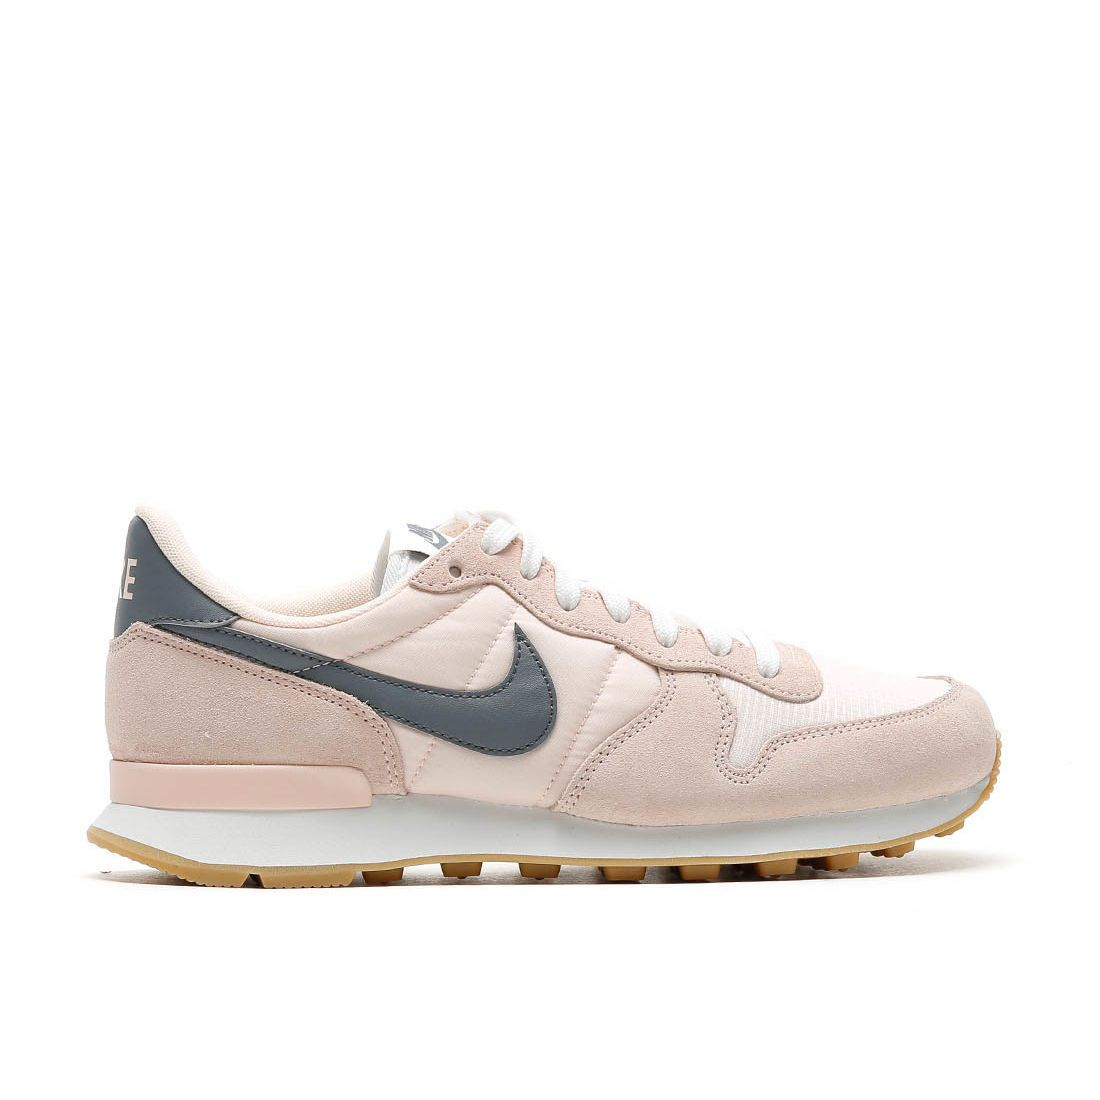 nike internationalist femme rose clair